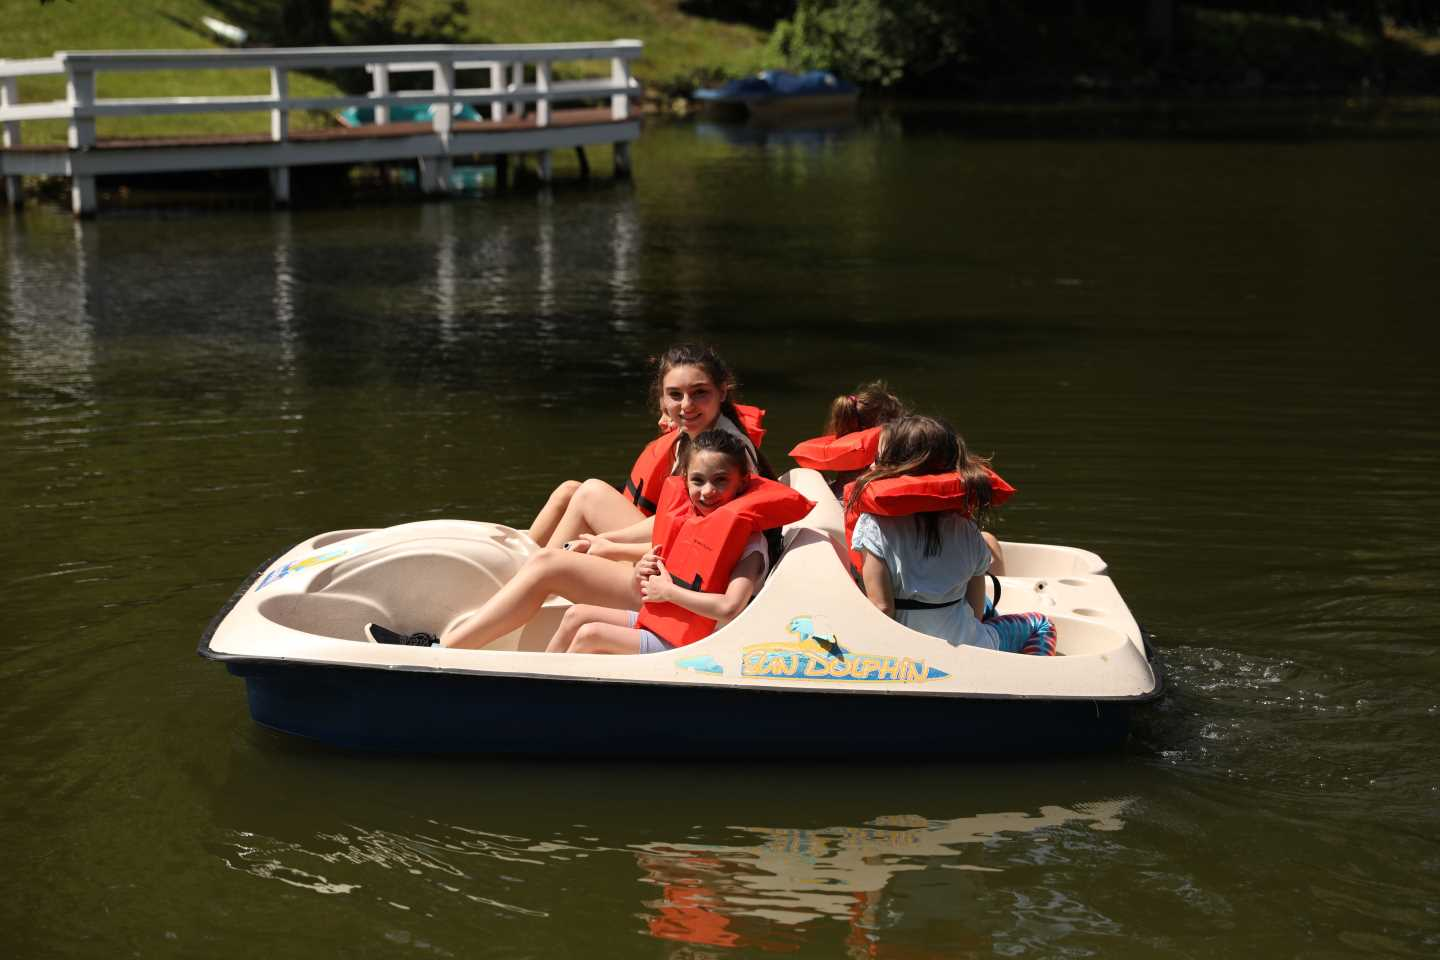 Campers on a paddle boat with life jackets on.